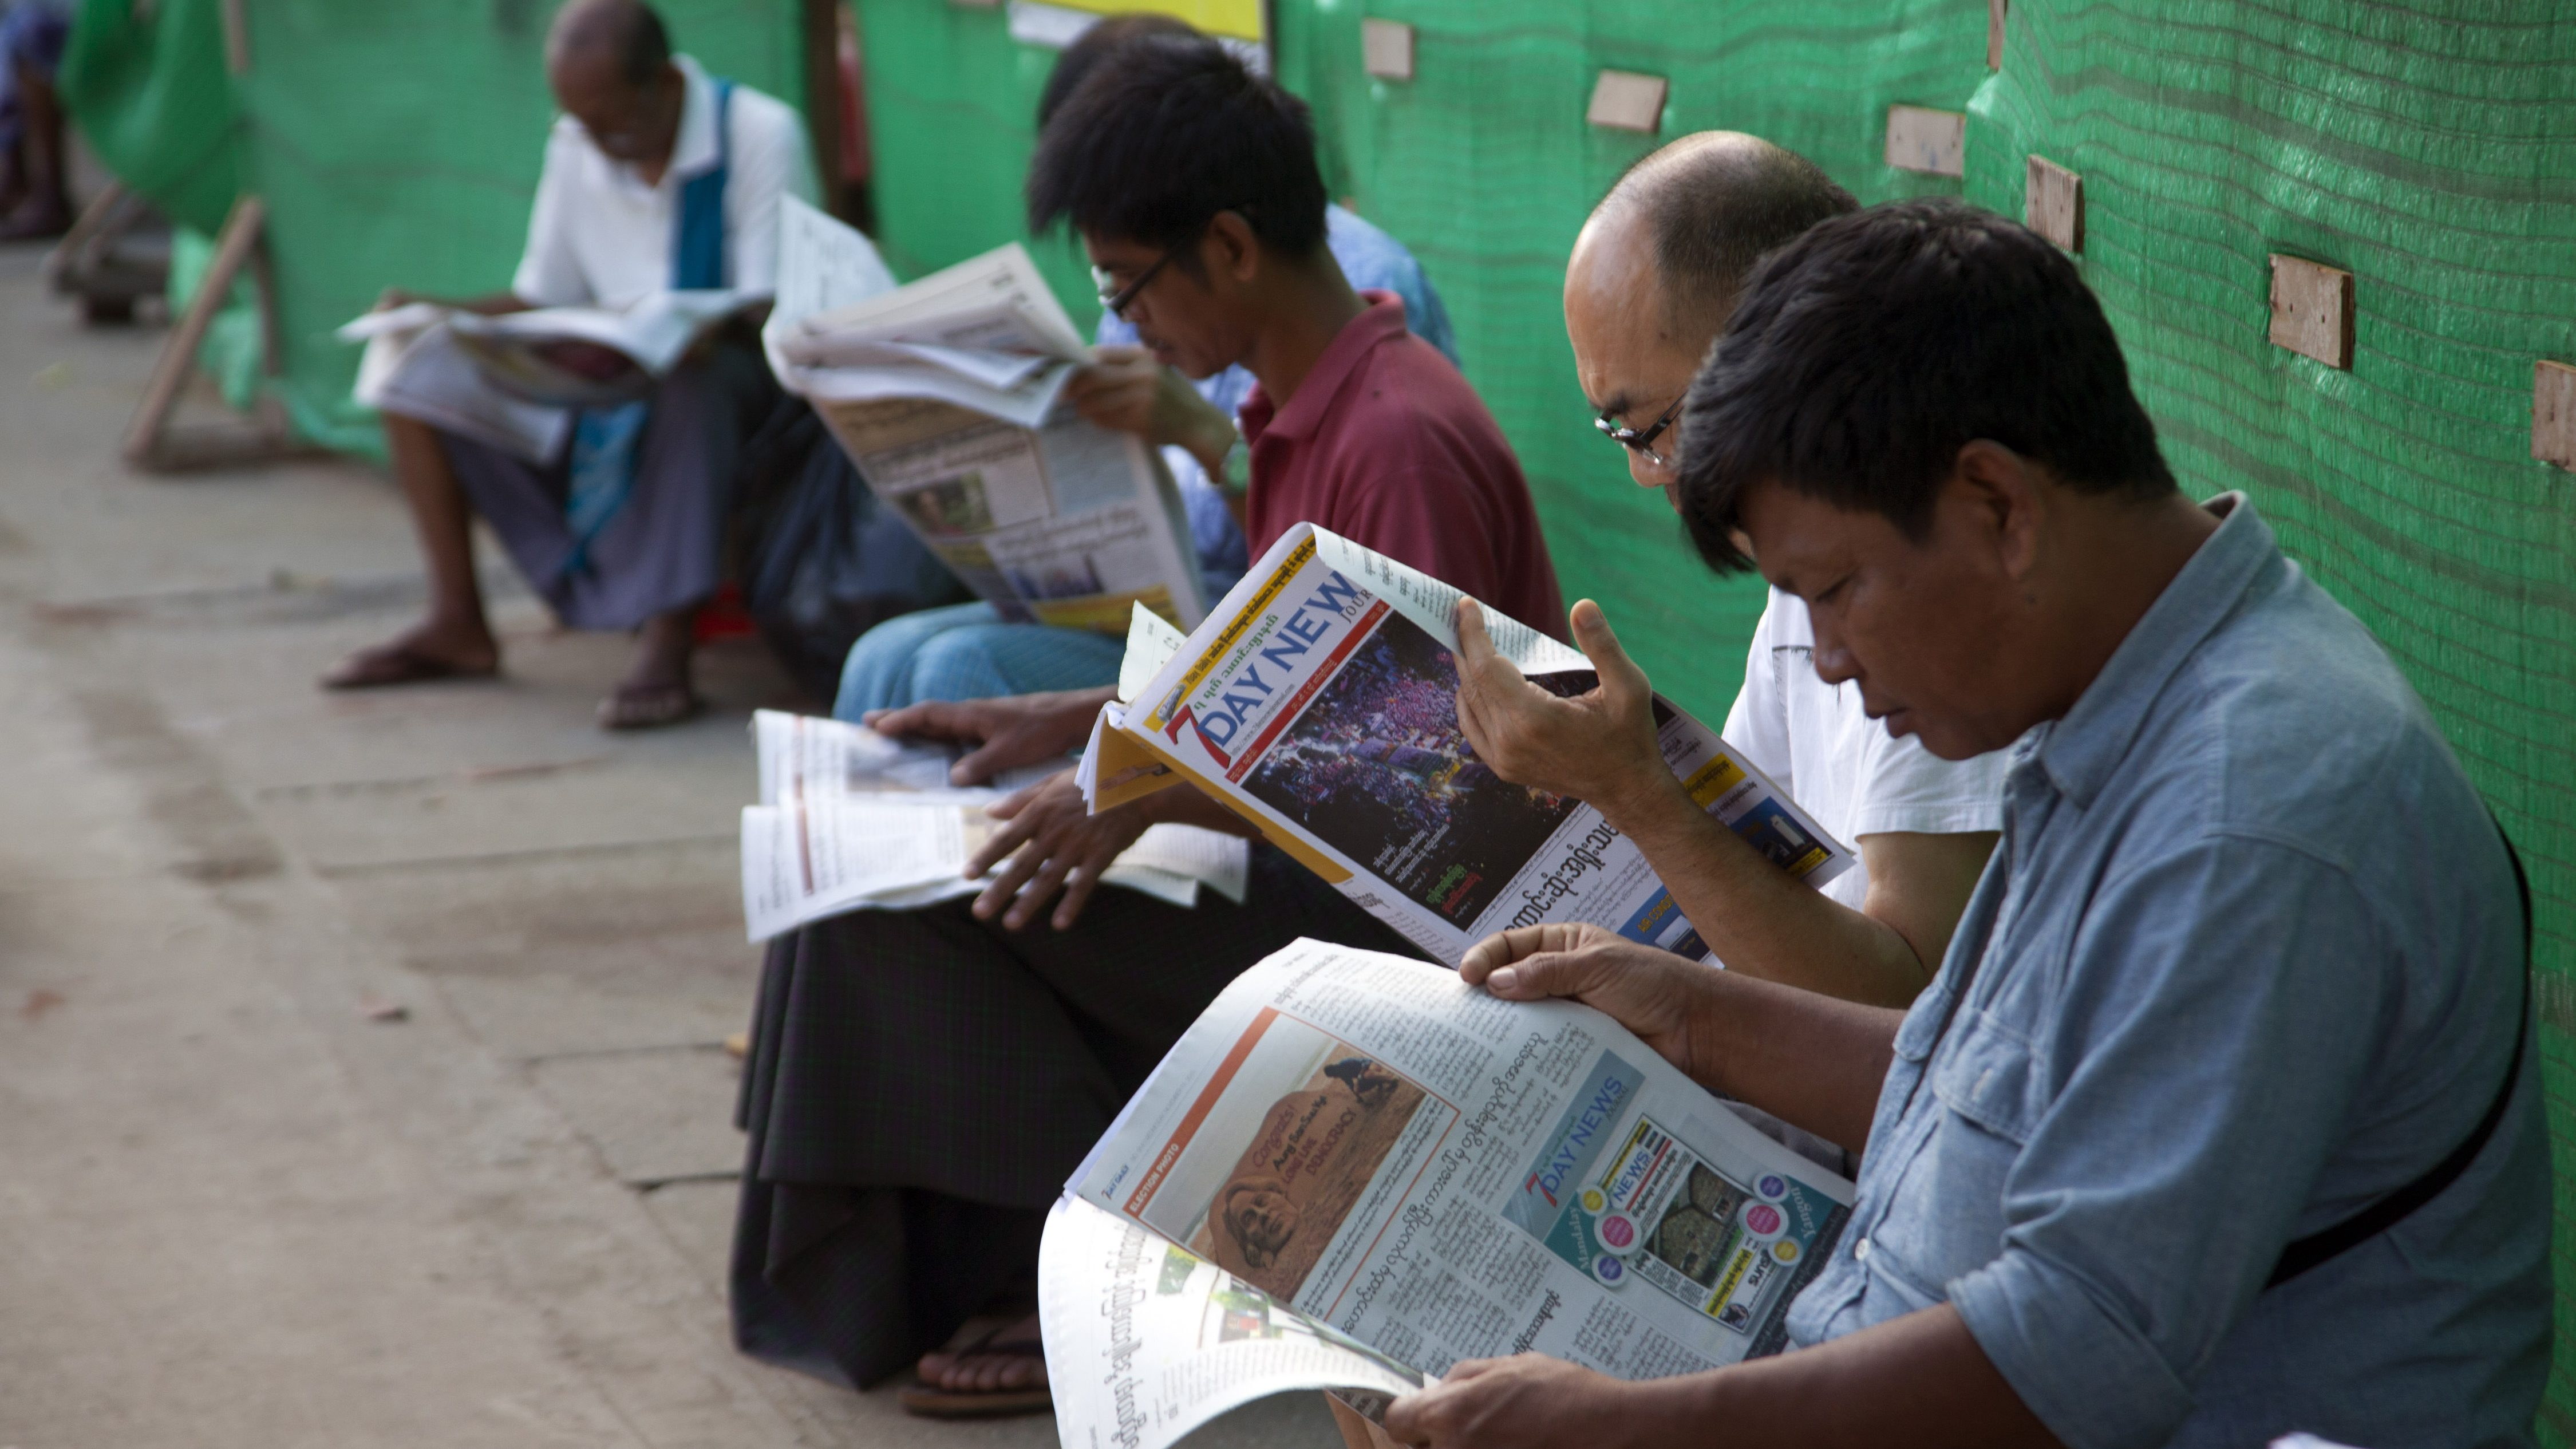 People read local newspapers at a roadside stand Wednesday, Nov. 11, 2015, in Yangon, Myanmar. Myanmar was trapped in a post-election limbo Tuesday with official results barely trickling in, although opposition leader Aung San Suu Kyi's party claimed a victory massive enough to give it the presidency and loosen the military's grip on the country. (AP Photo/Khin Maung Win)